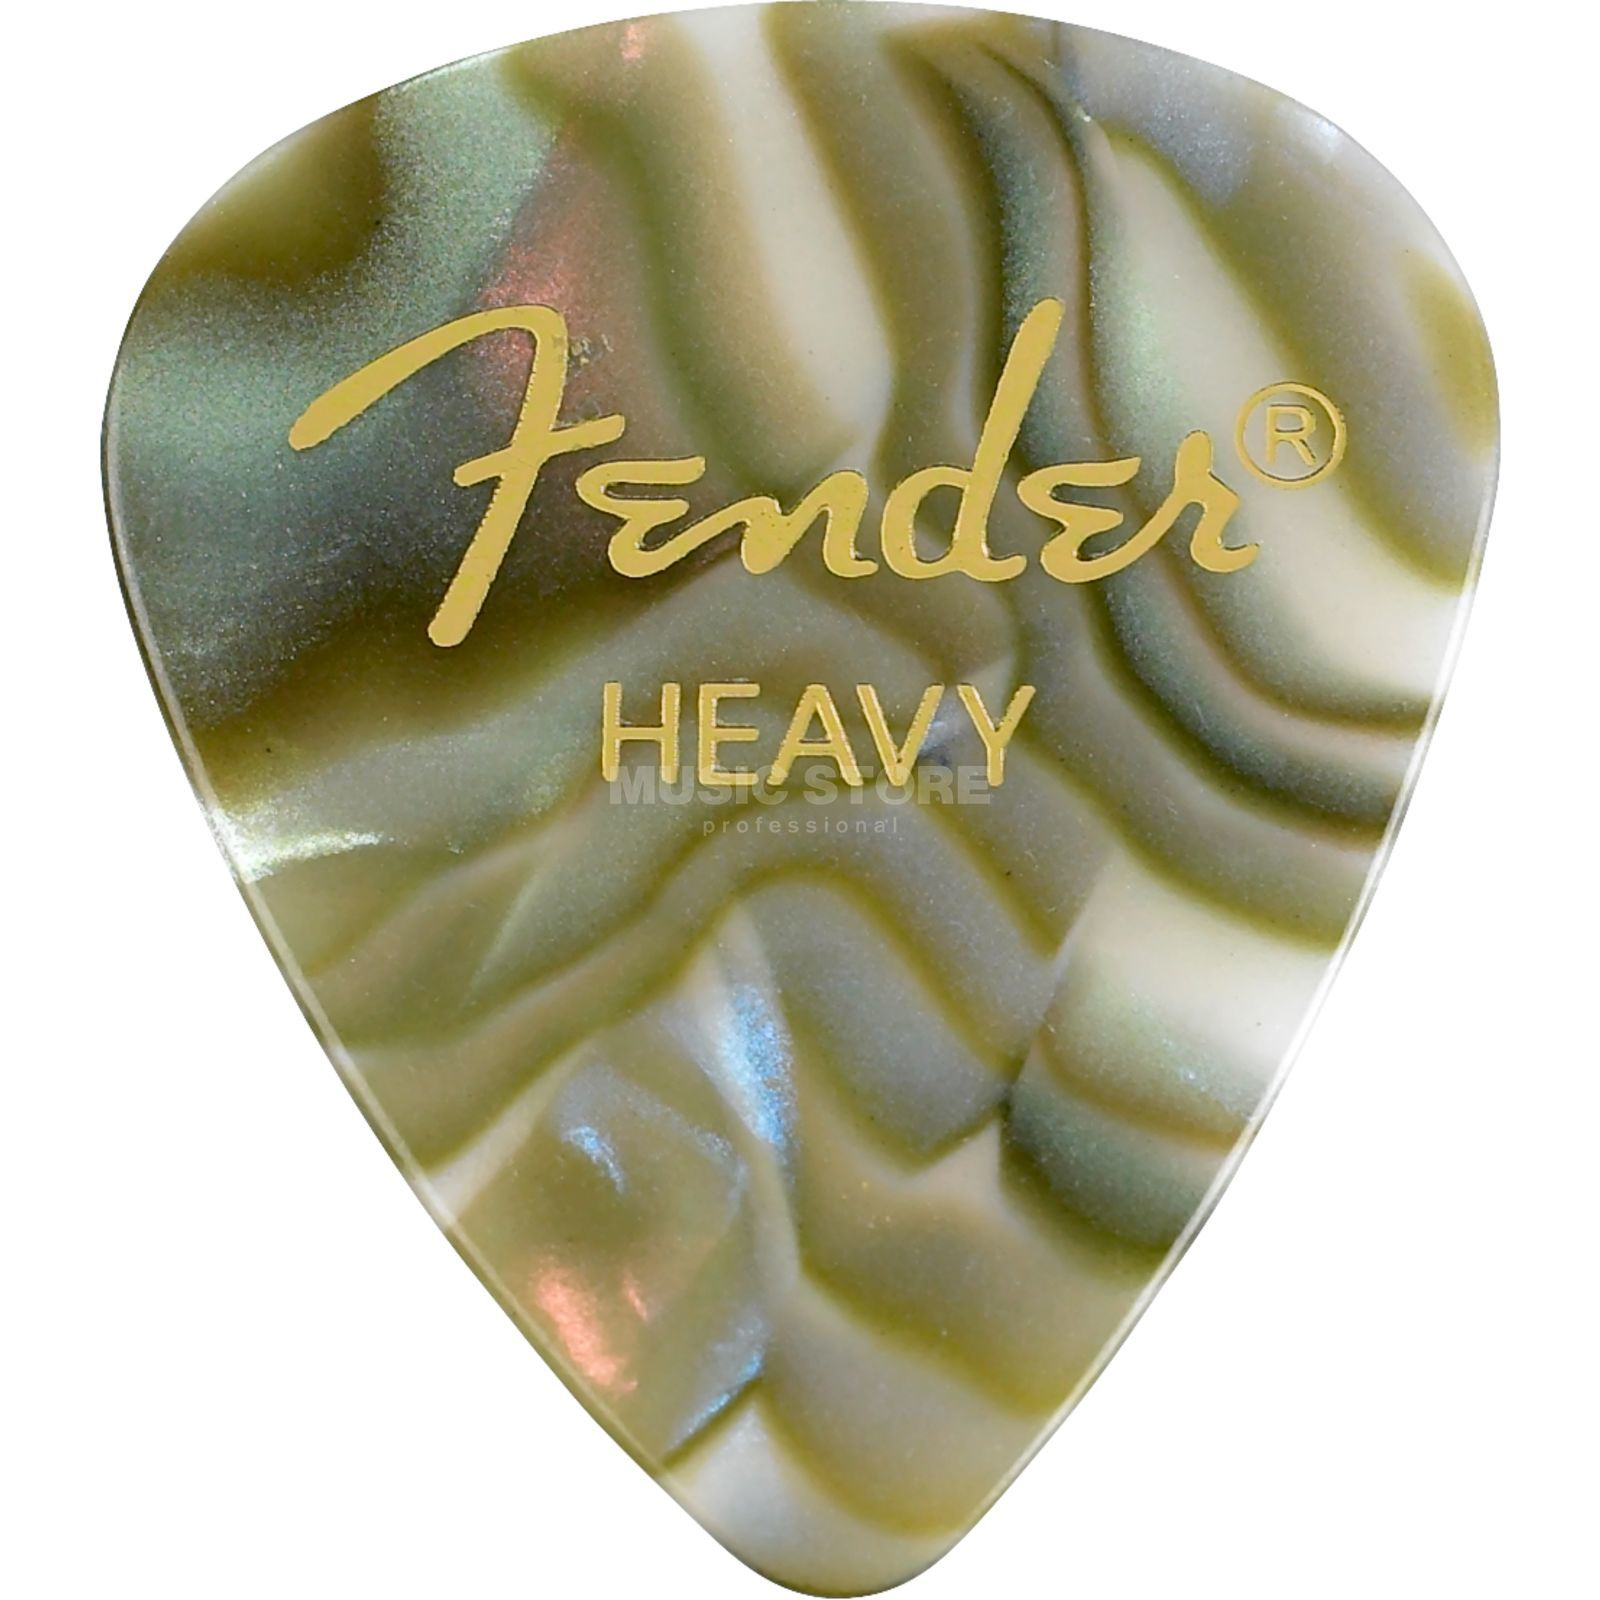 Fender Picks 351 Abalone heavy 12-Pack Premium Celluloid Produktbillede